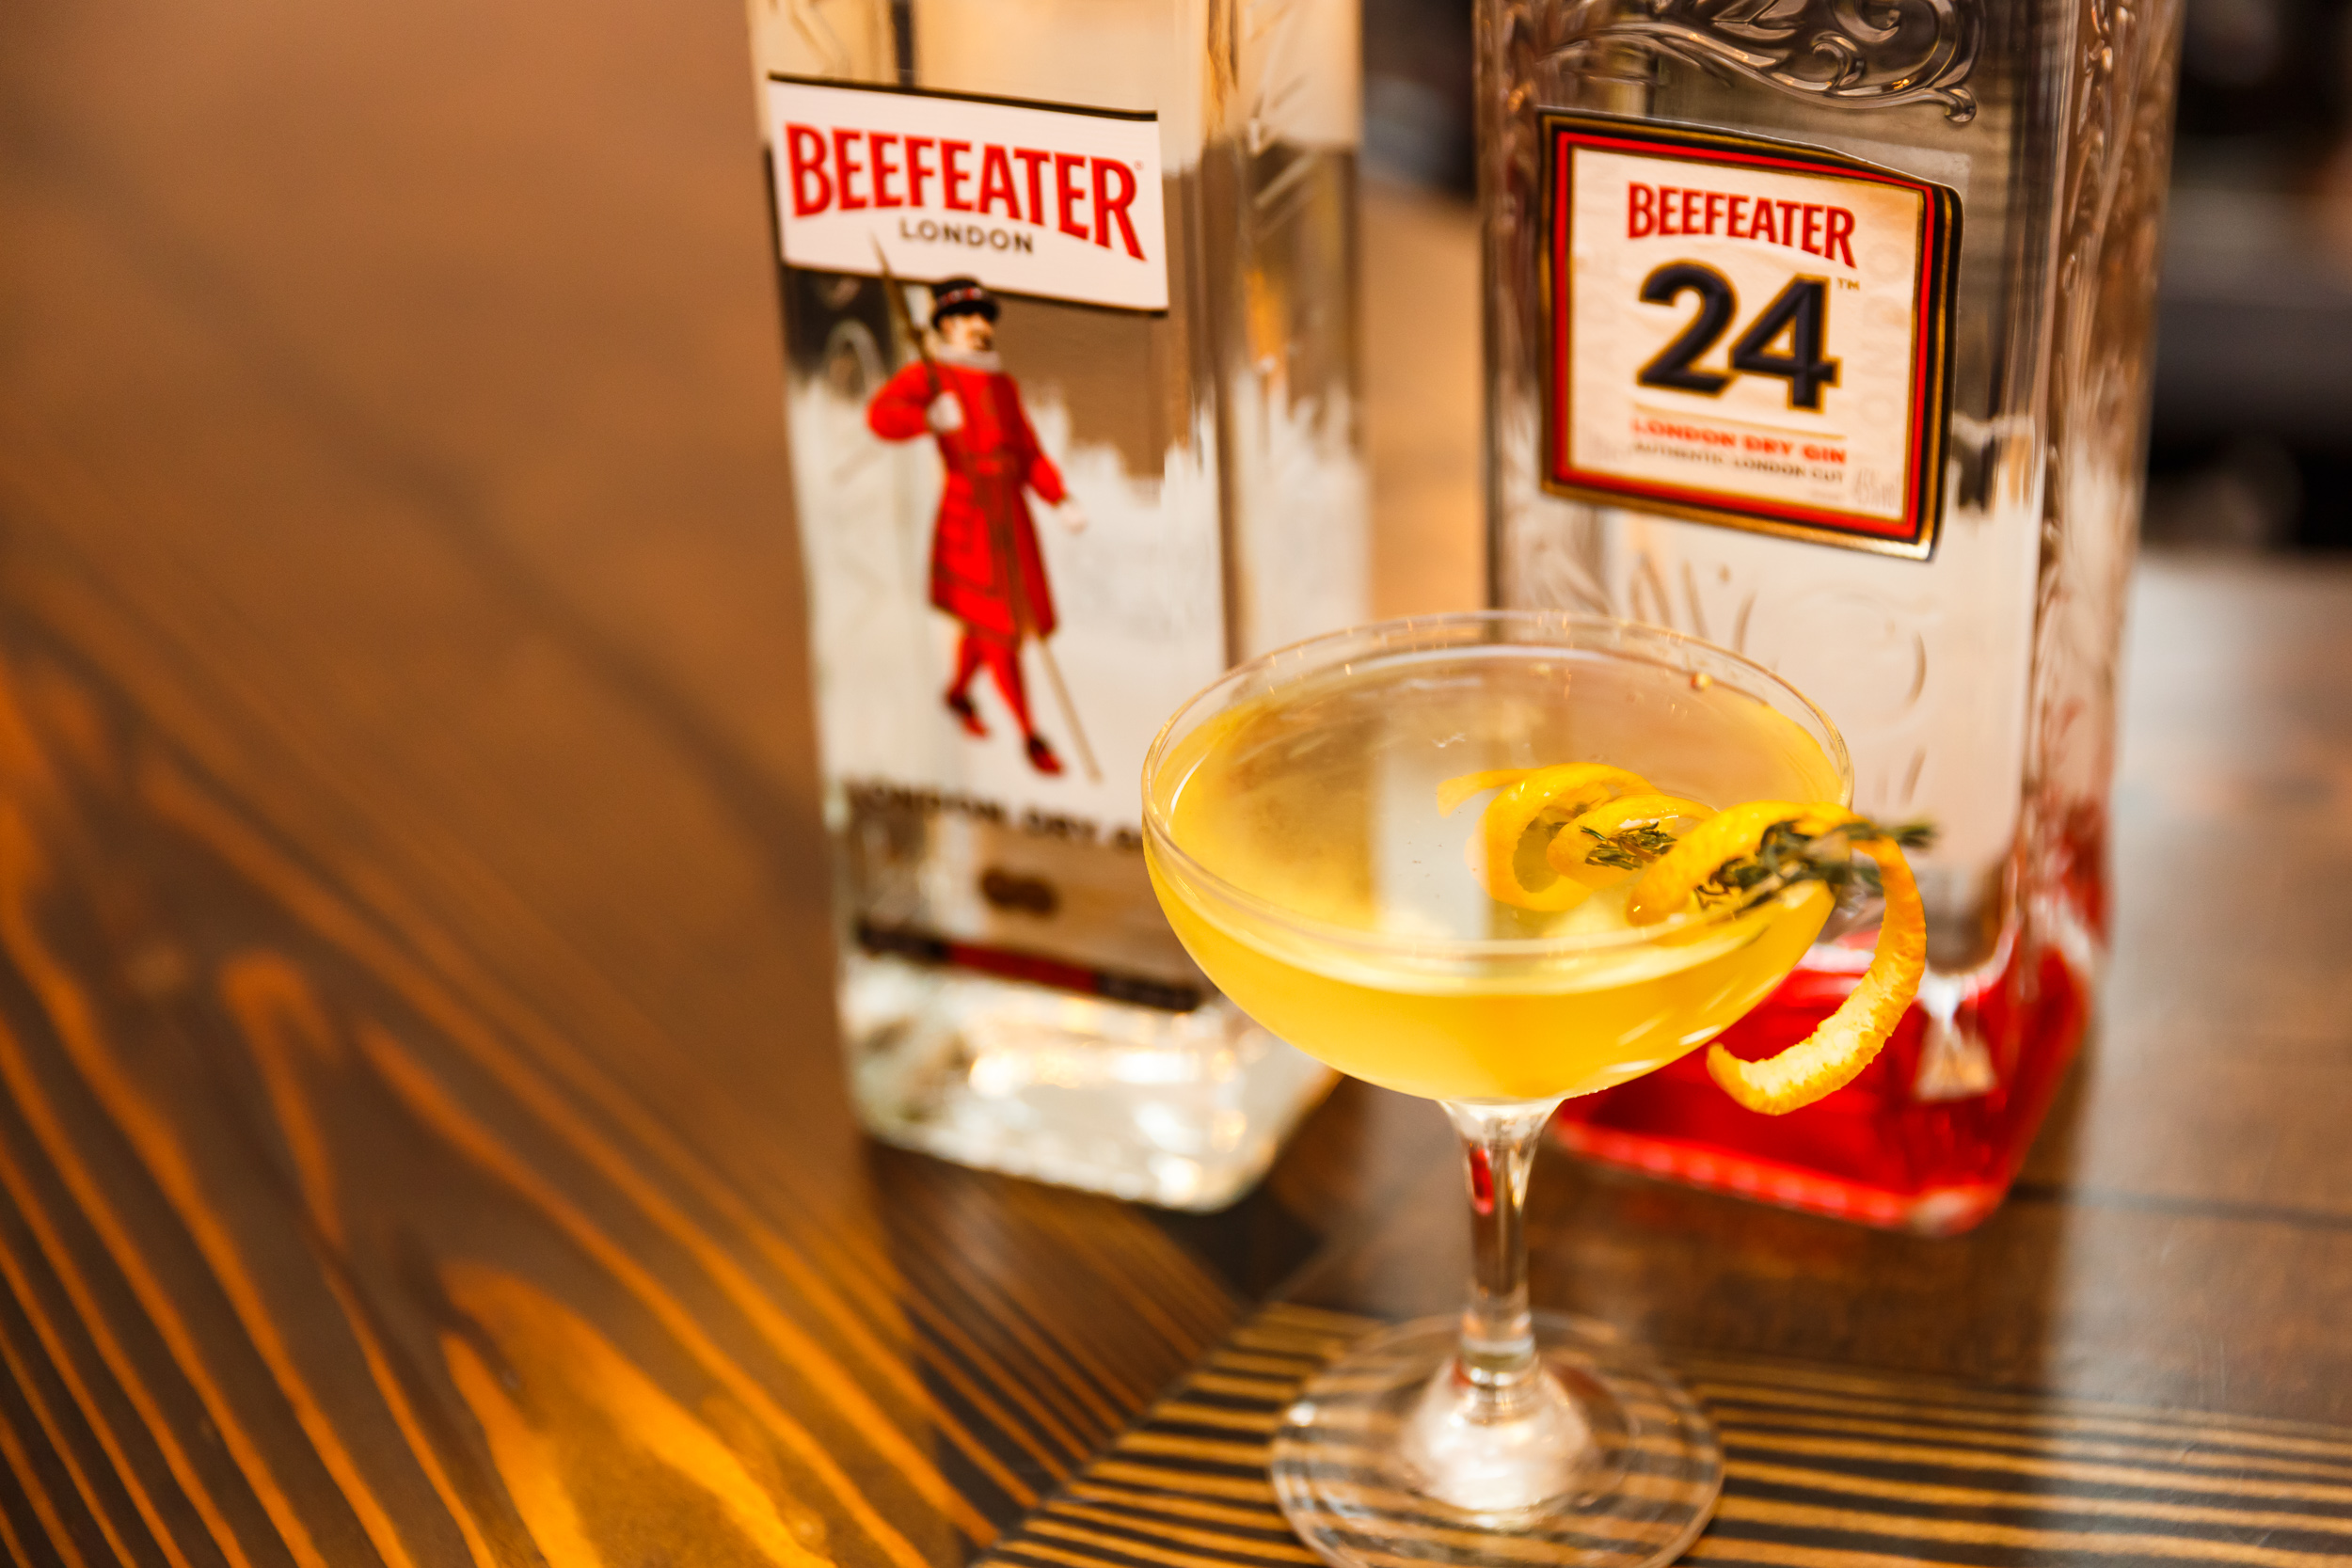 Beefeater-MIXLDN-photo-27.jpg